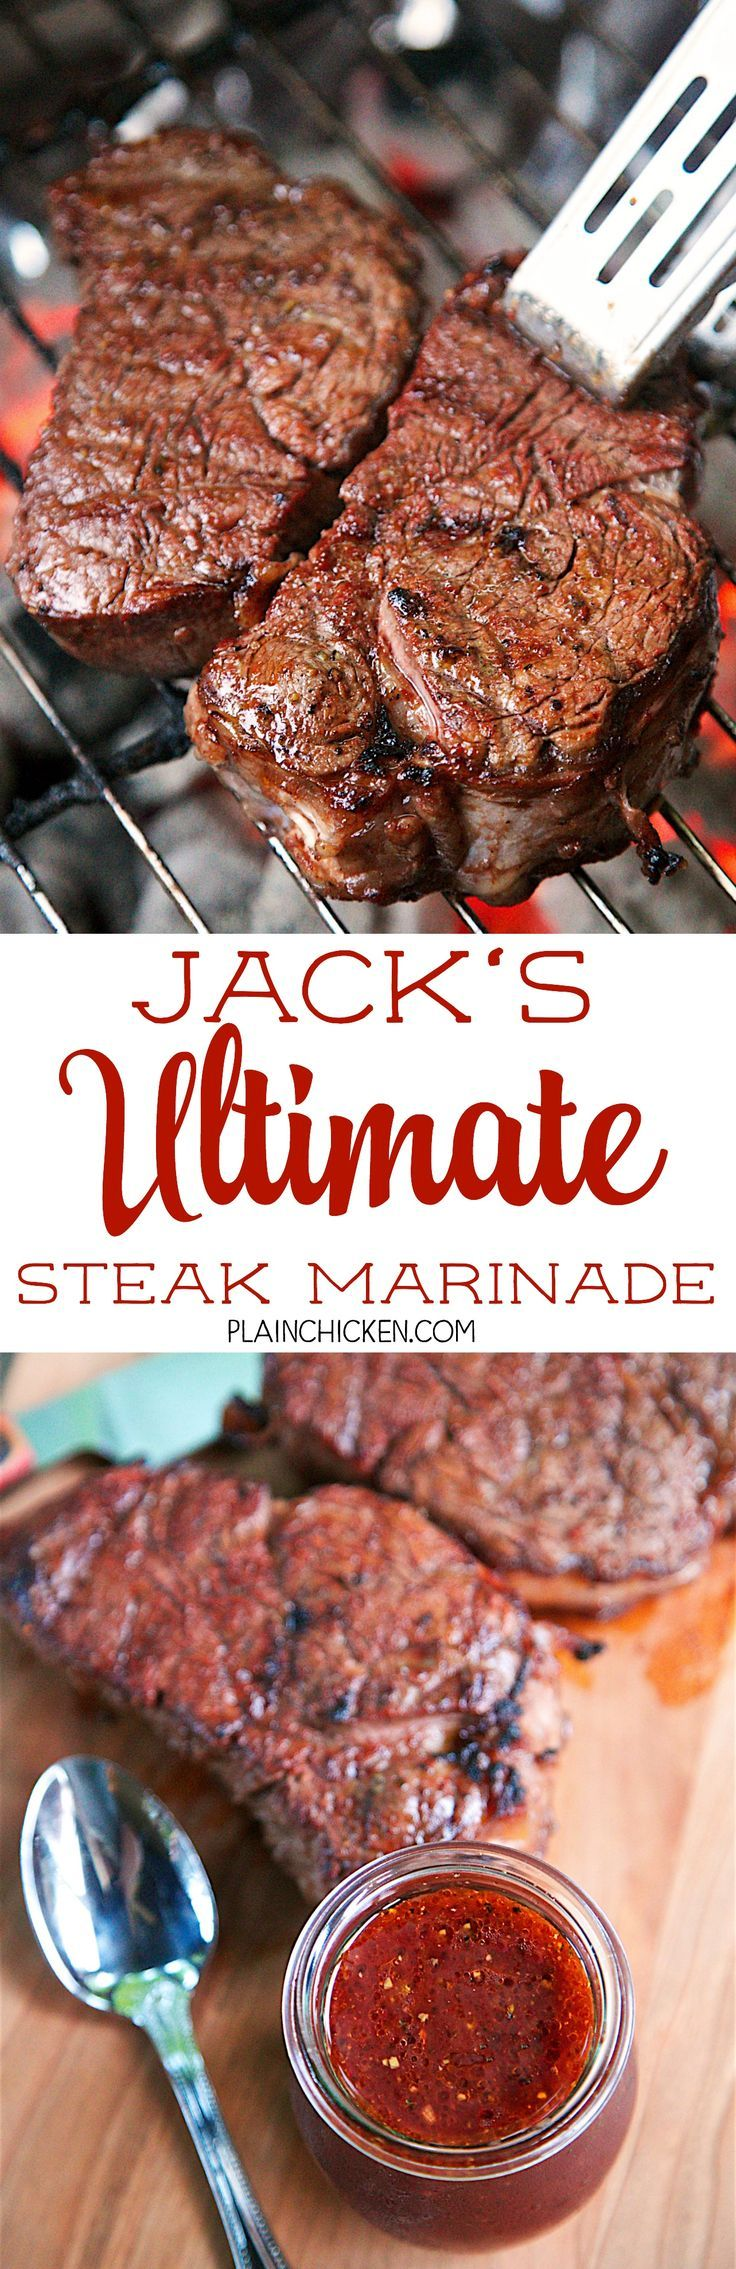 Jack S Ultimate Steak Marinade Steaks Marinated In Red Wine Chili Sauce Red Wine Vinegar Worcestershire Sauc With Images Diy Food Recipes Beef Recipes Marinated Steak